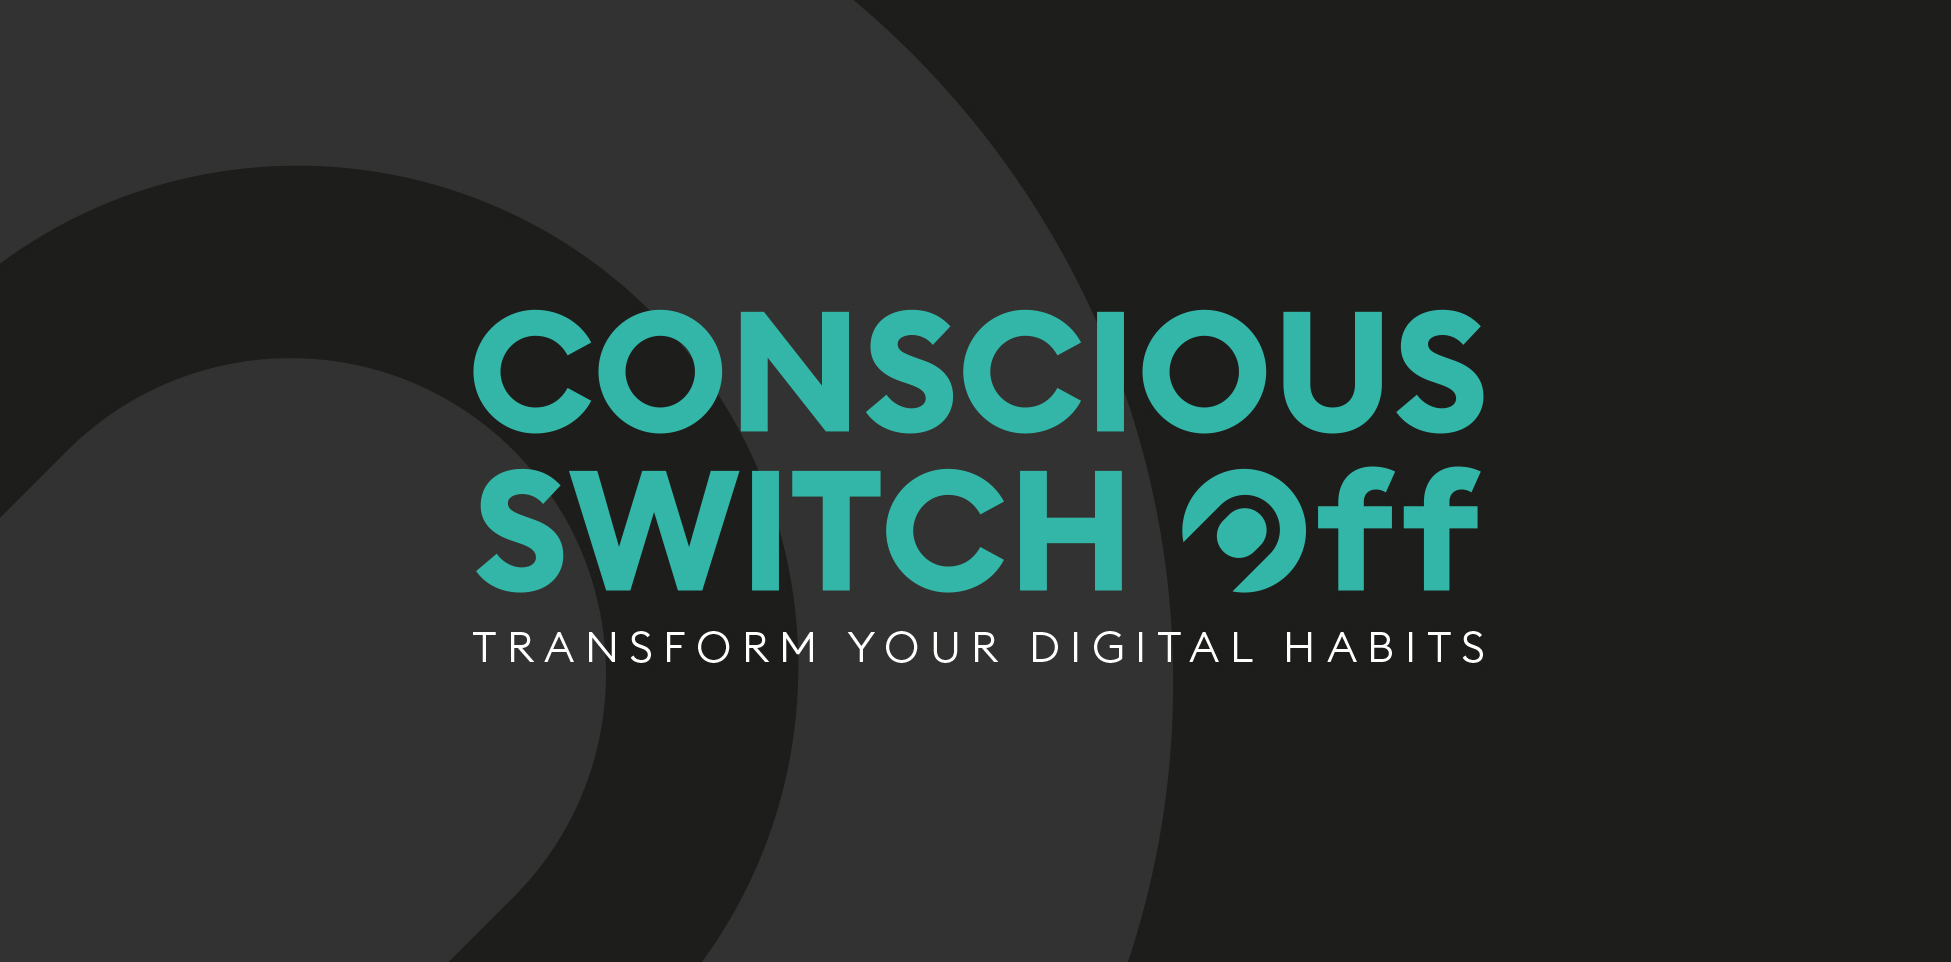 Transform your digital habits